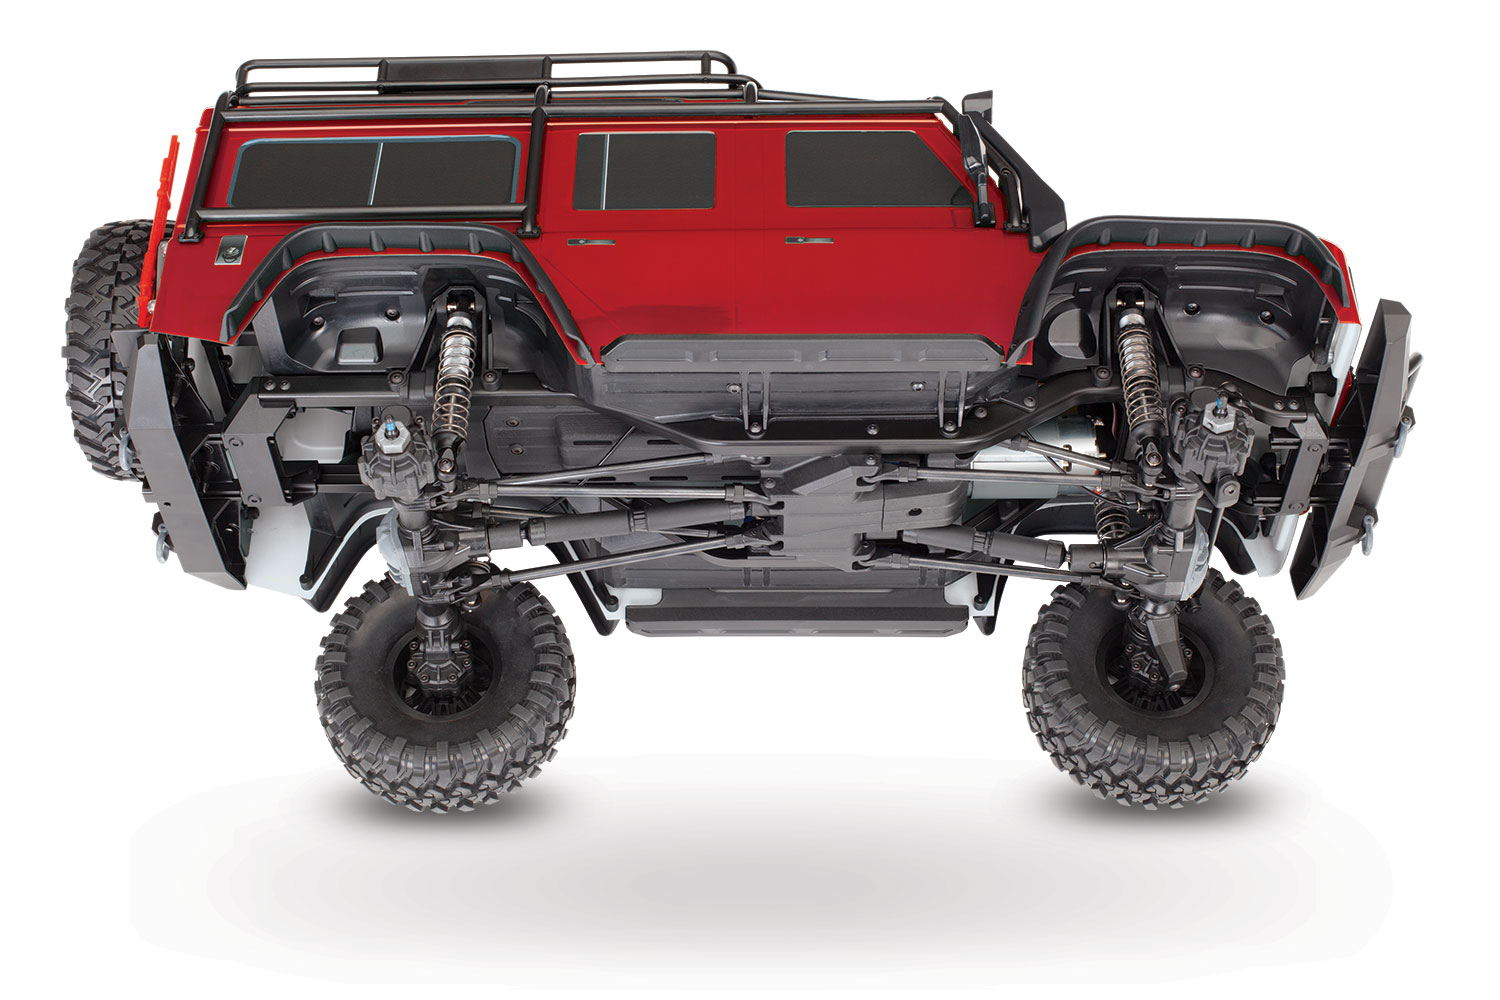 rc scale 4x4 with Behold Every Photo Traxxas Trx 4 on Traxxas Land Rover Rc Defender 2017 10 in addition 19789 Mst Cmx Crawler 4wd Ford Bronco 242mm Kit 532140 additionally Watch additionally Launchpad Pro further Behold Every Photo Traxxas Trx 4.